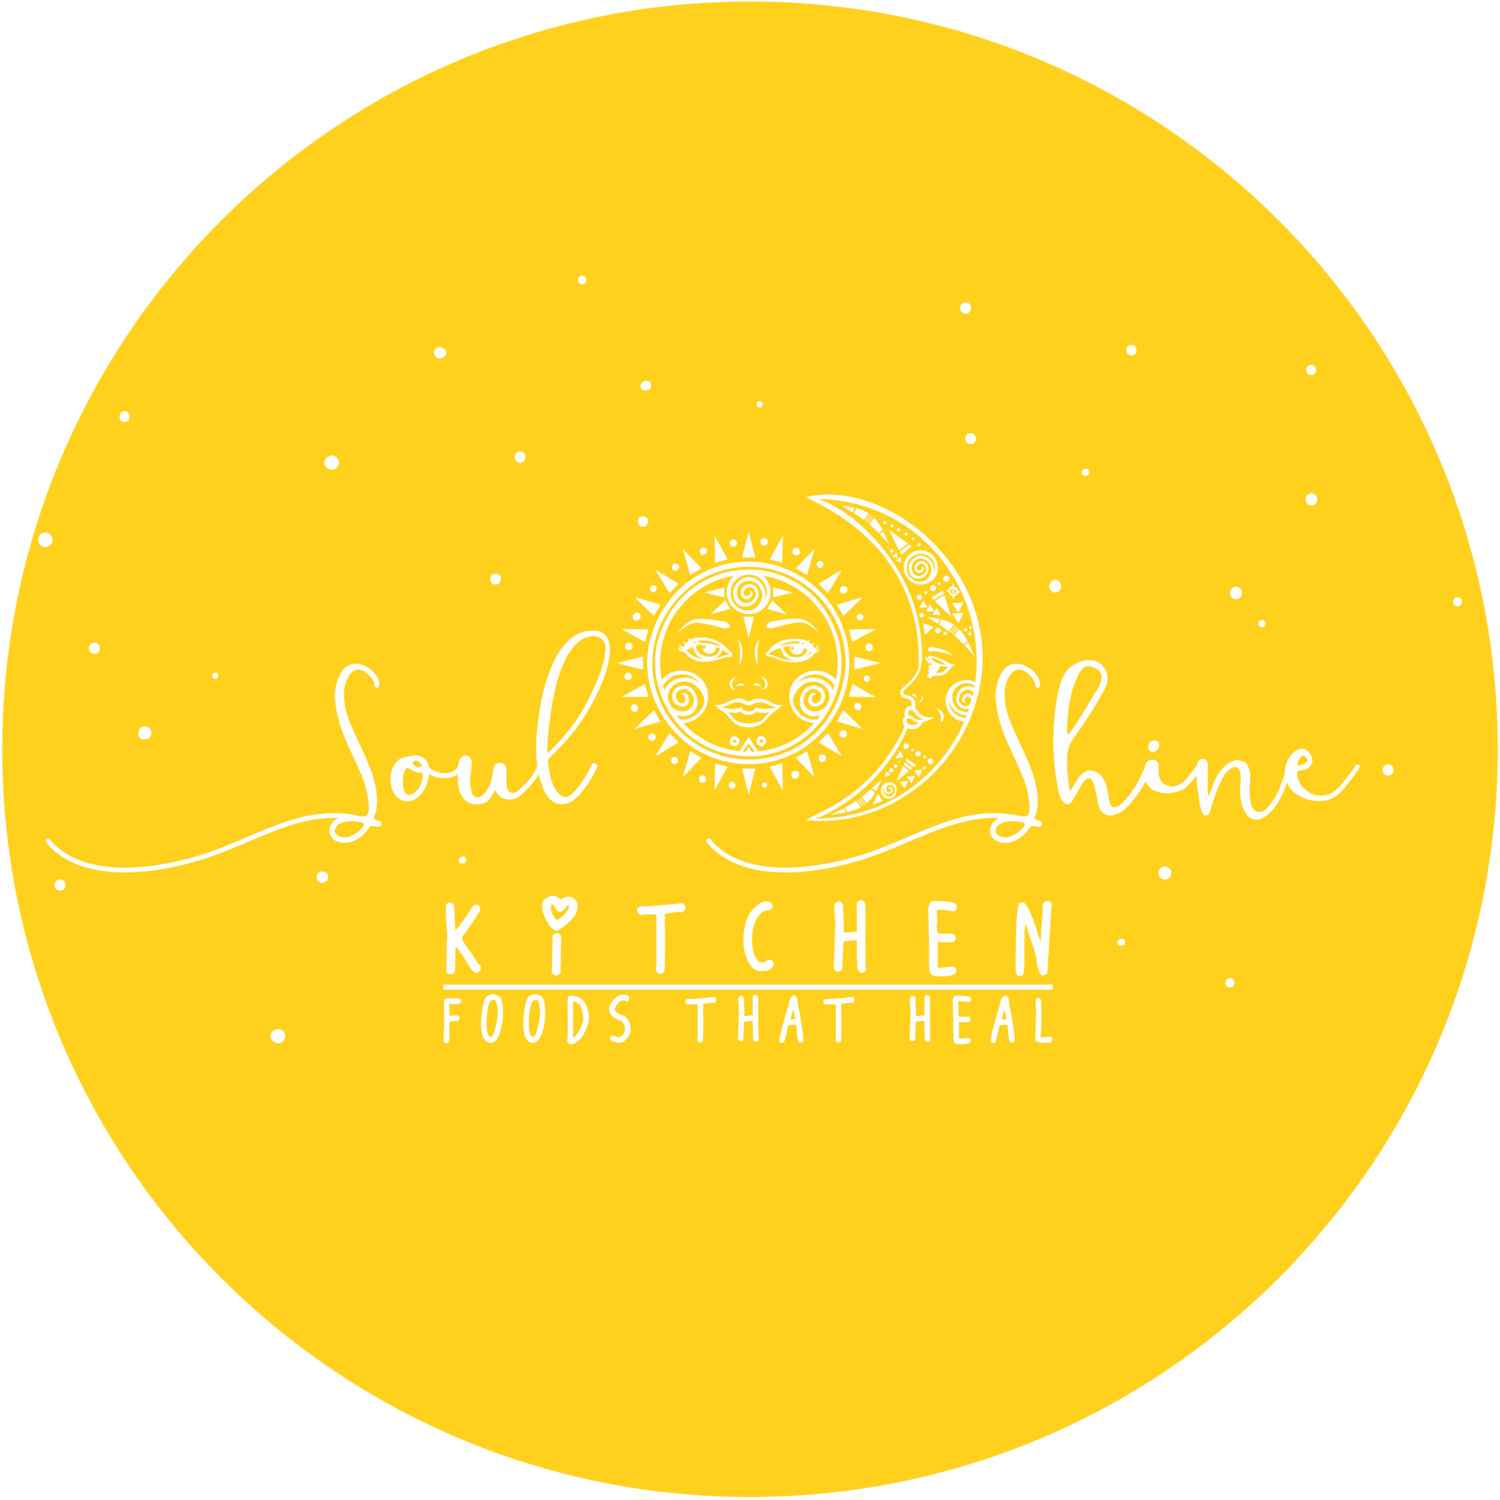 SoulShine Kitchen